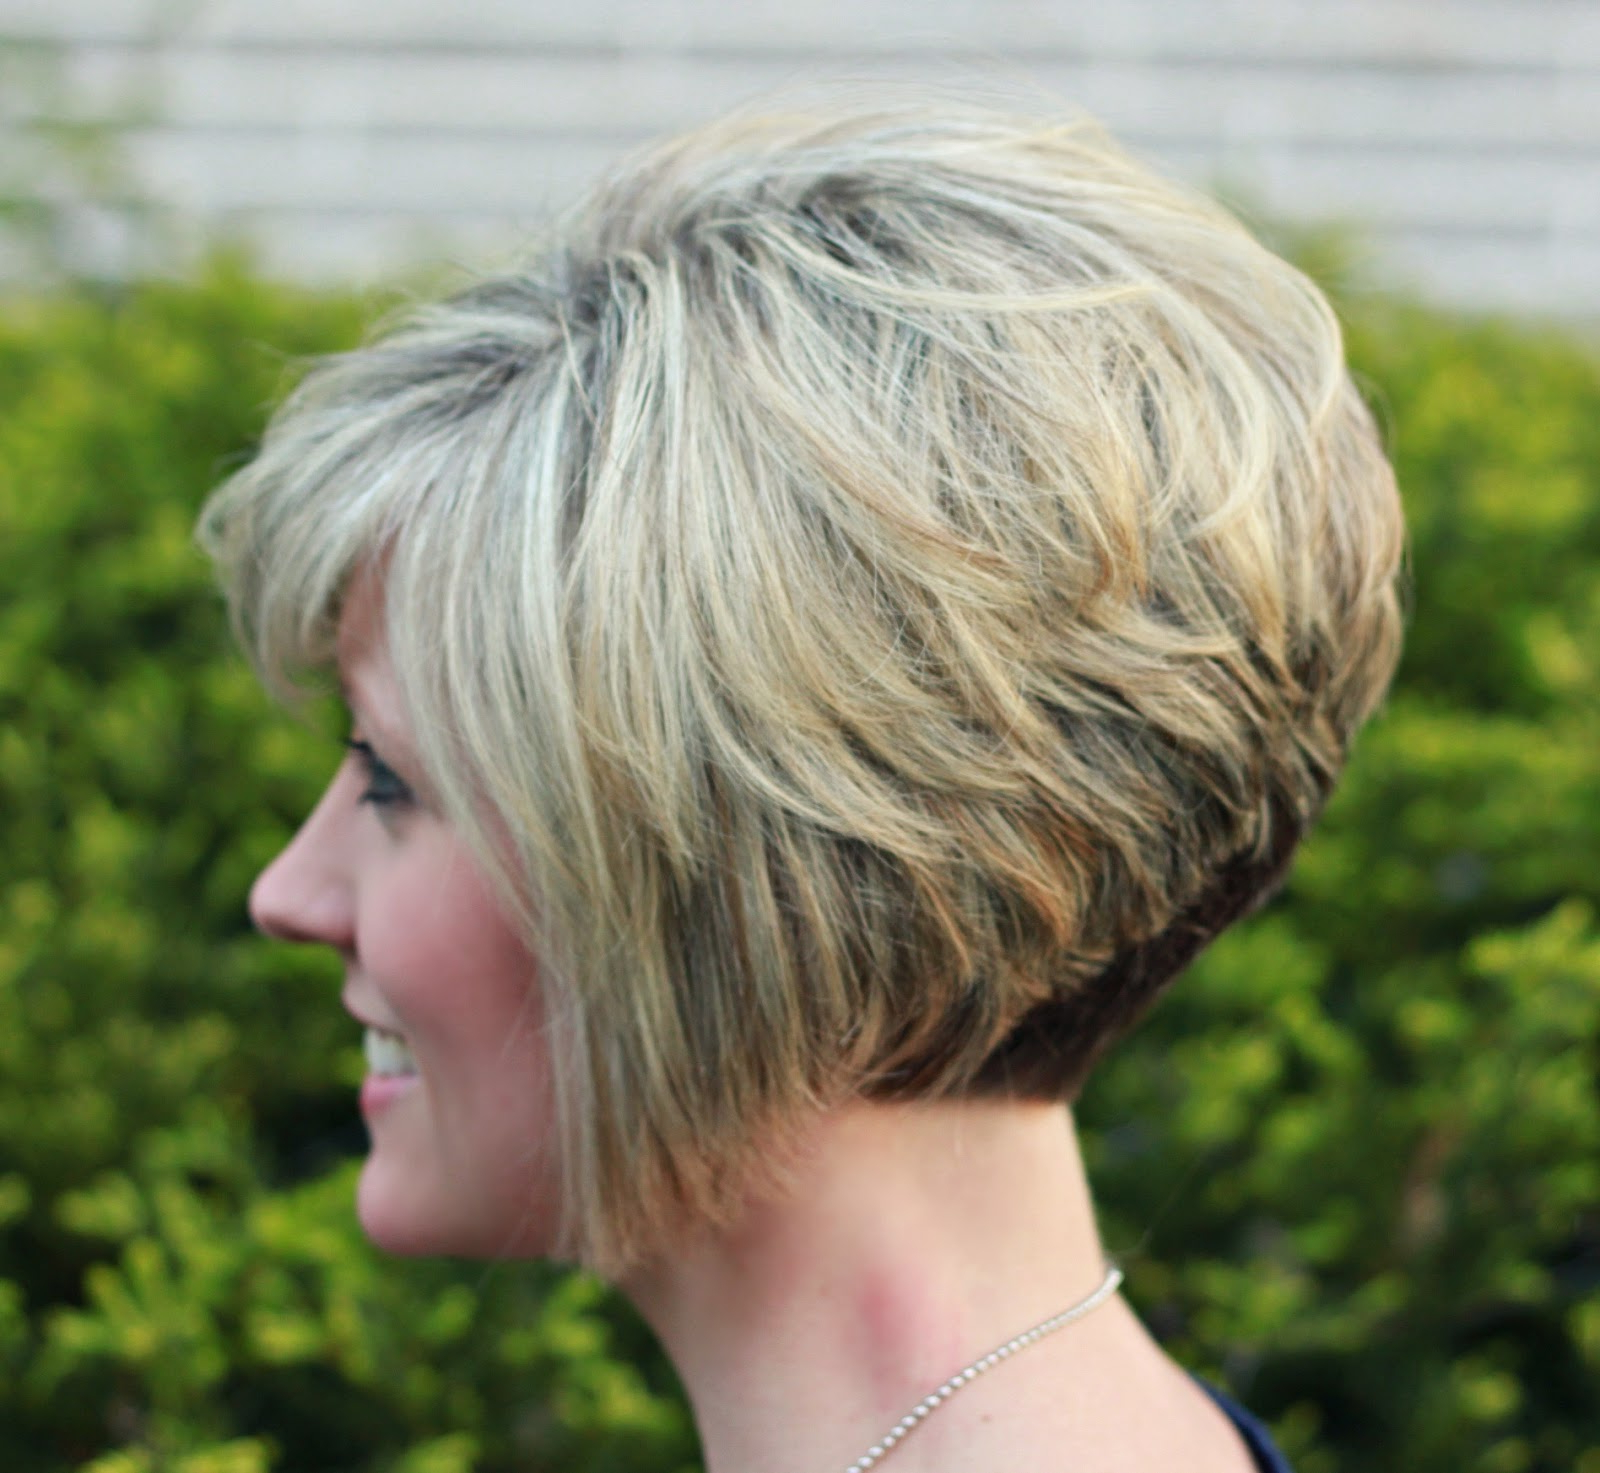 Formidable Curly Bob Hairstyles For Thin Hair Also Medium Stacked Regarding Stacked Curly Bob Hairstyles (View 23 of 25)